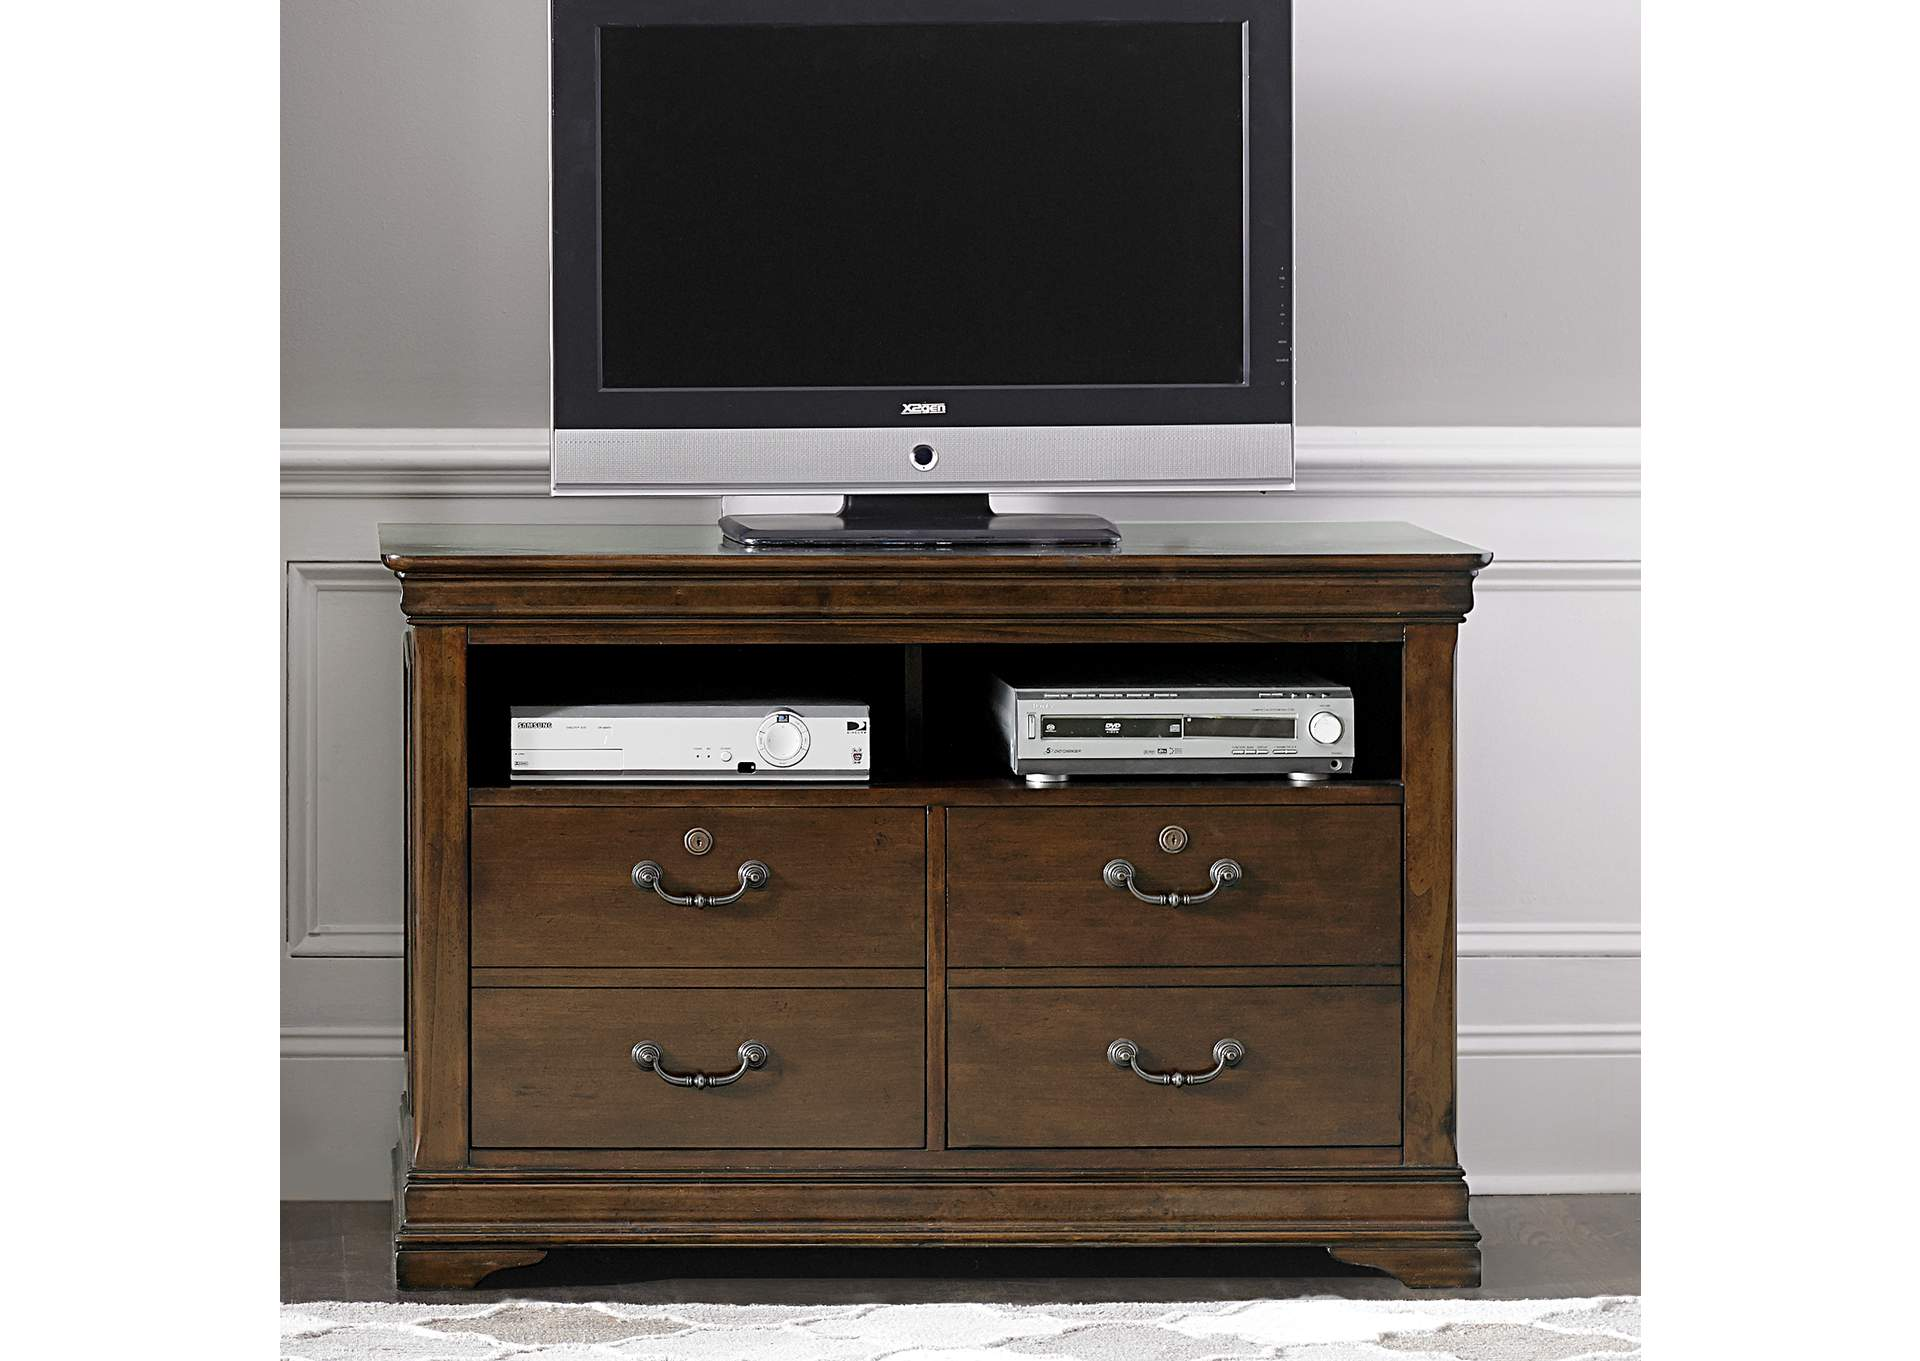 Chateau Valley Media File Cabinet,Liberty